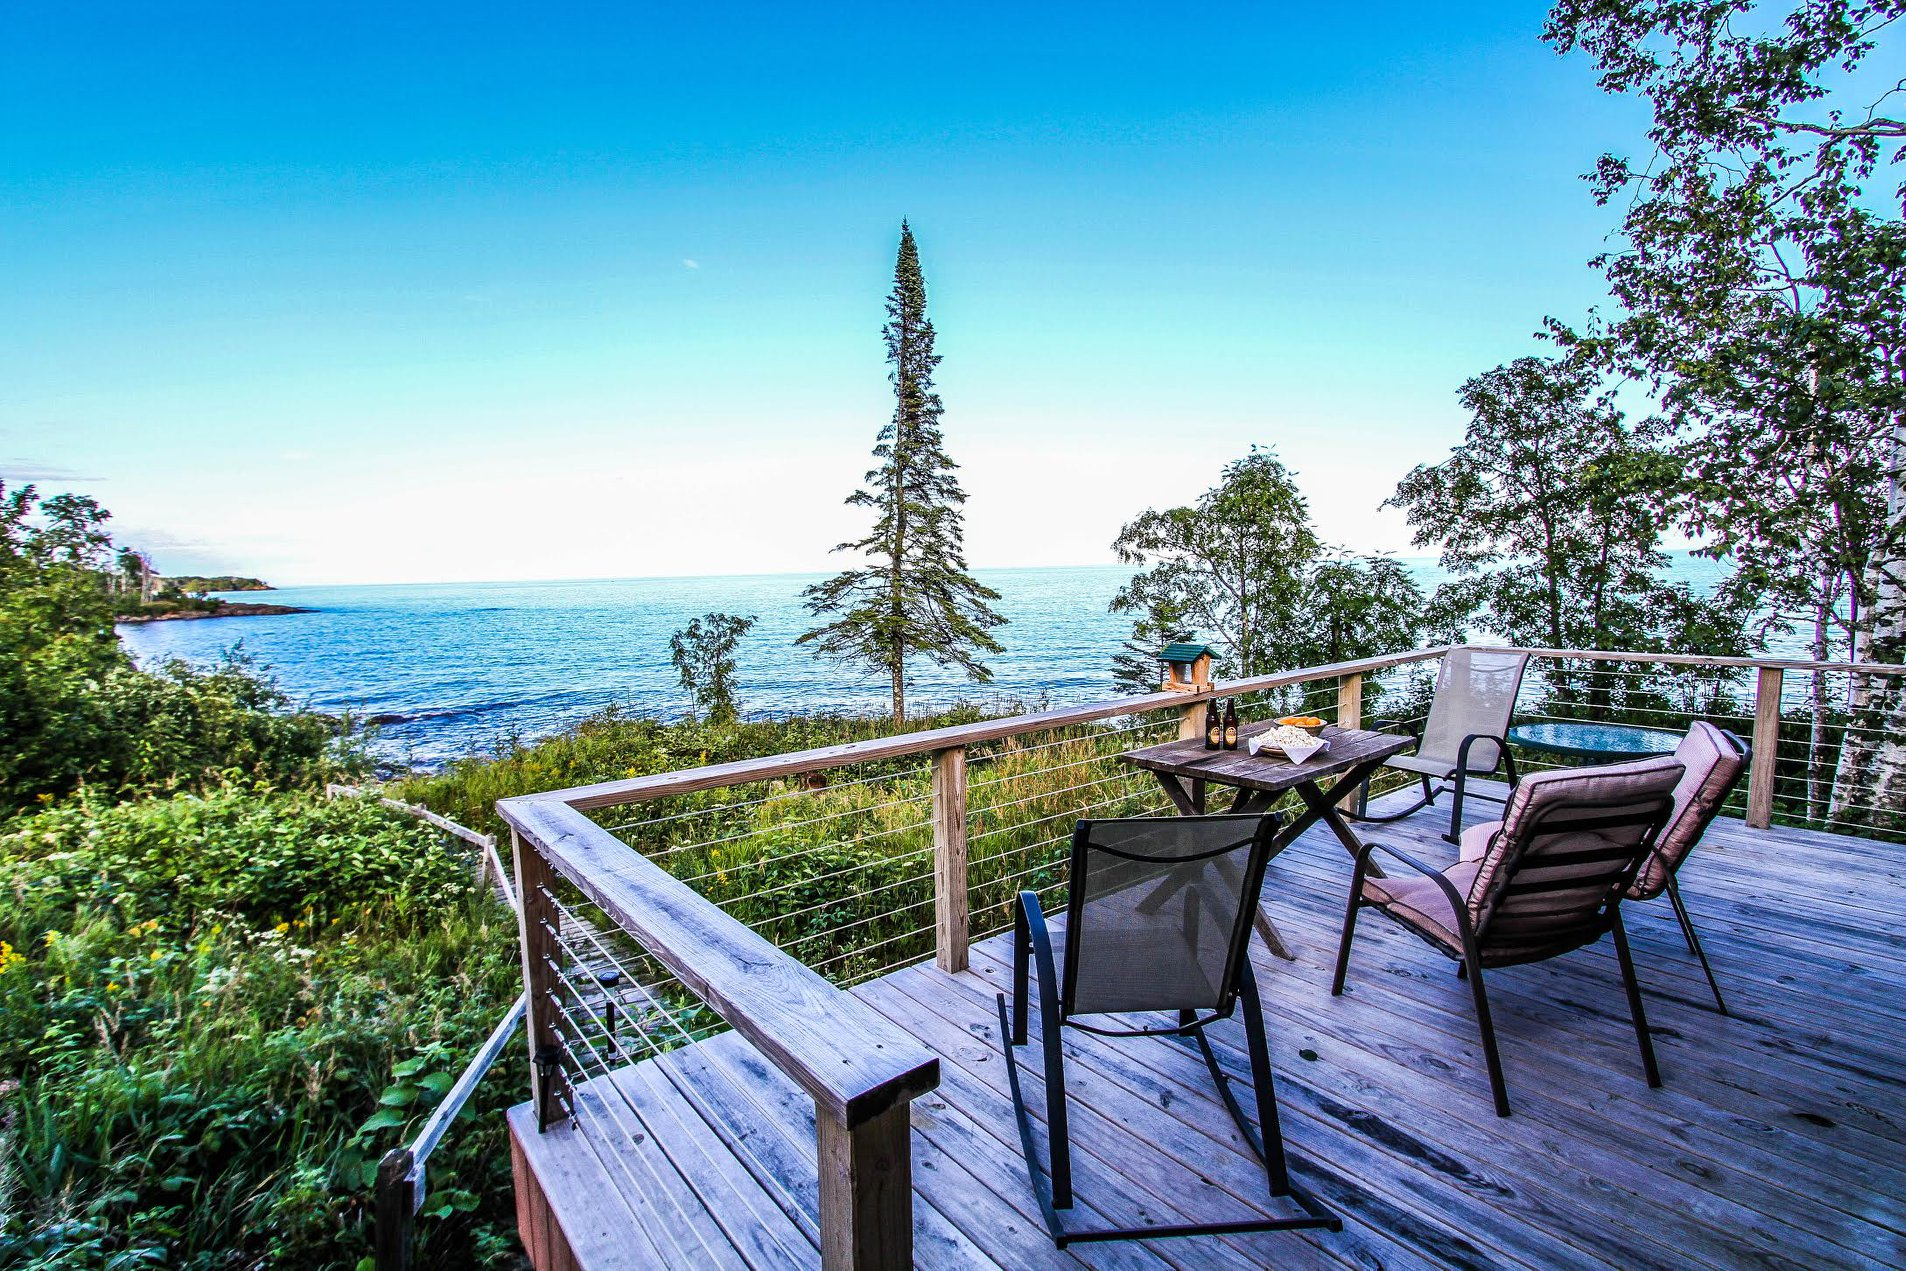 Wonderful Places to Visit in Minnesota